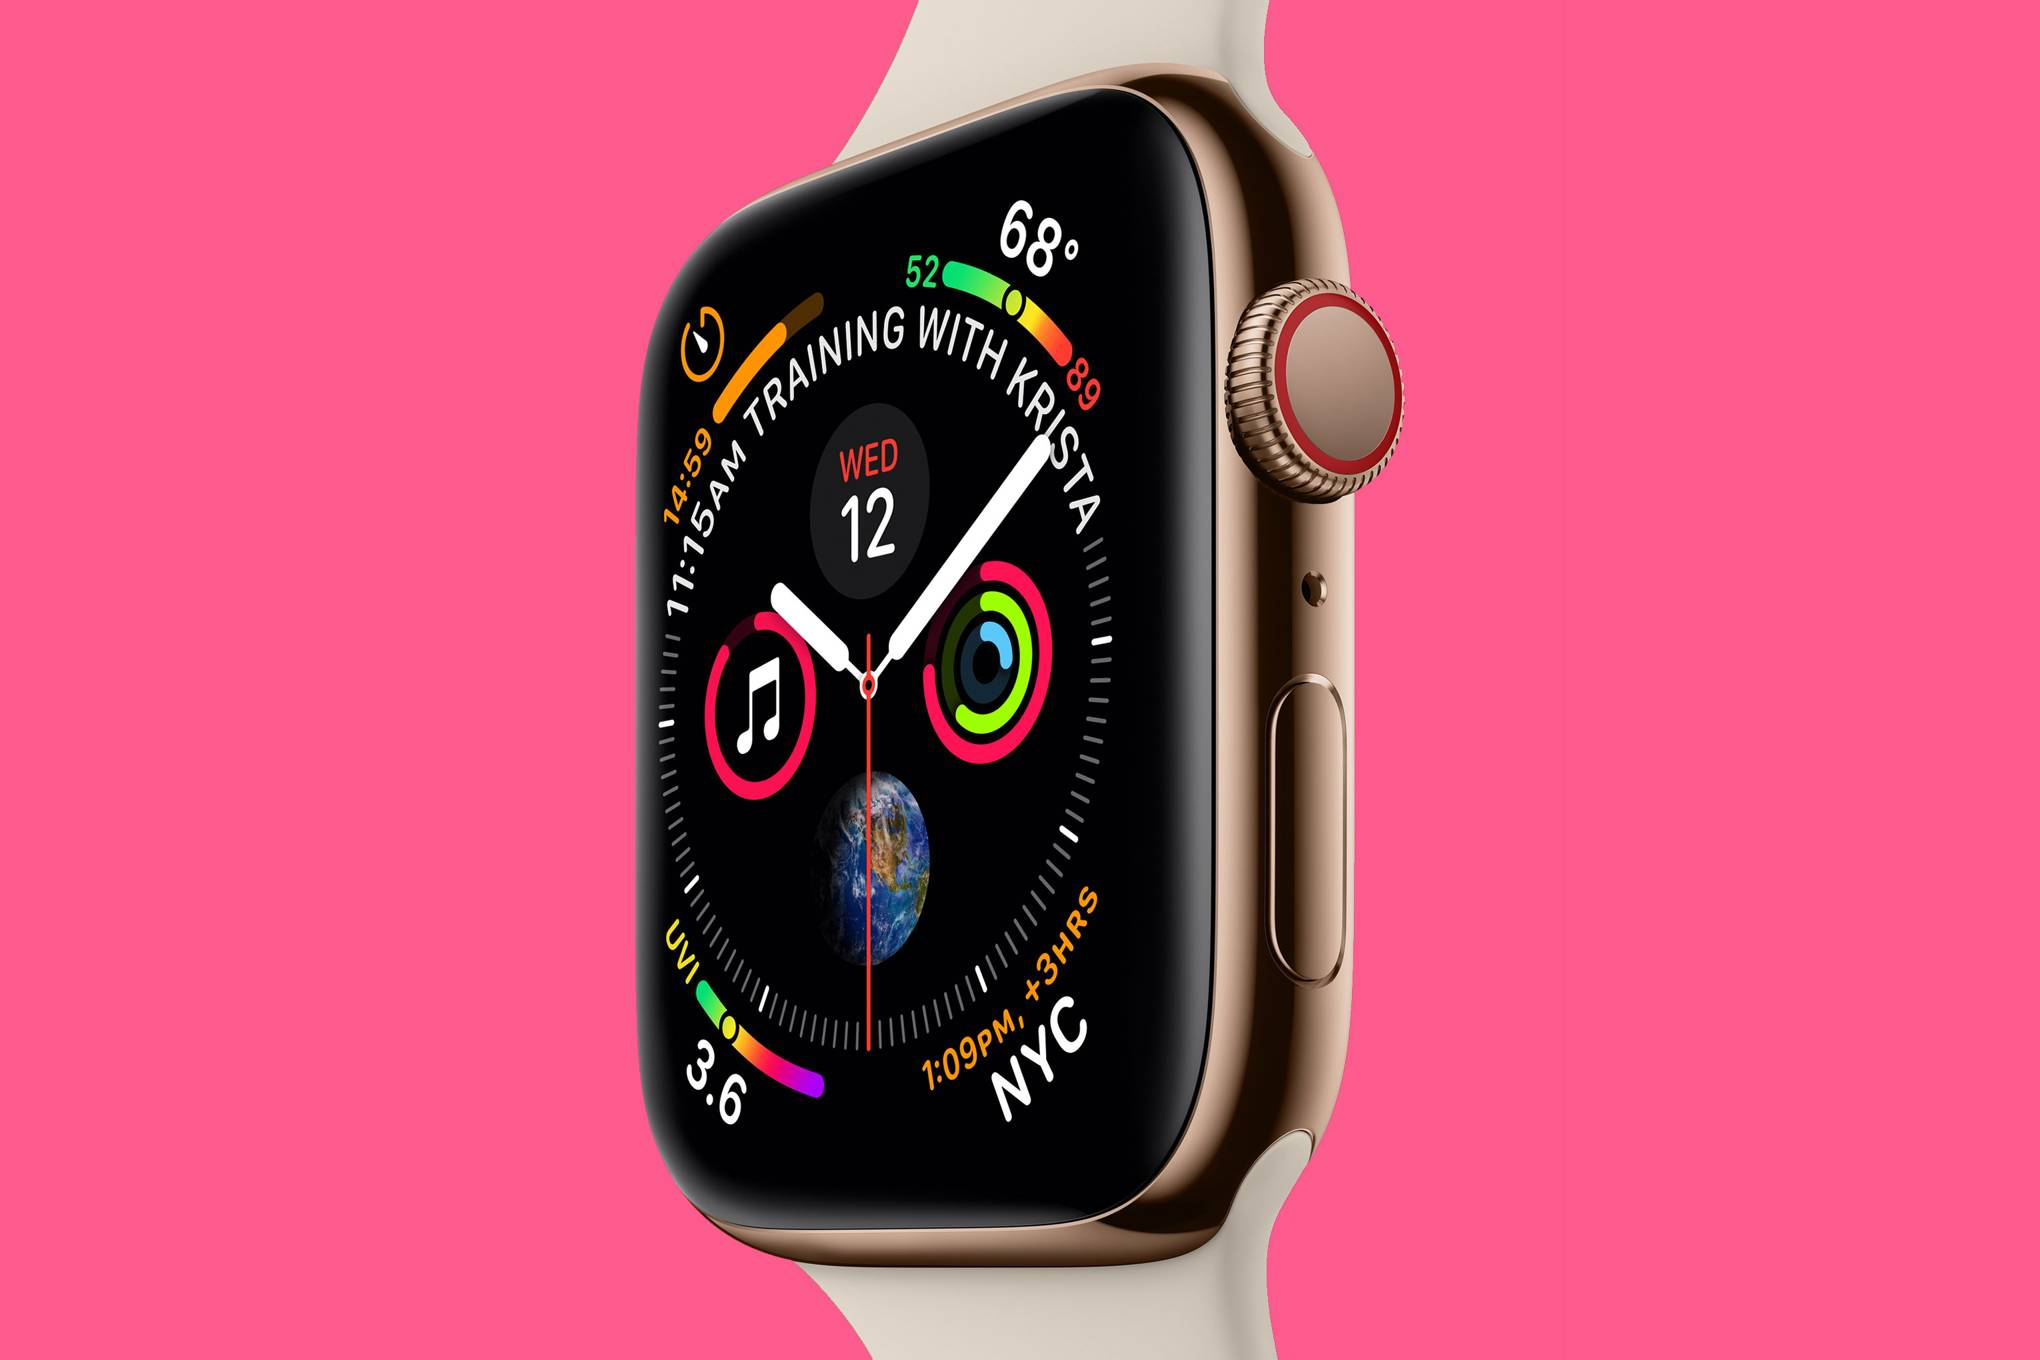 apple watch specs by serial number